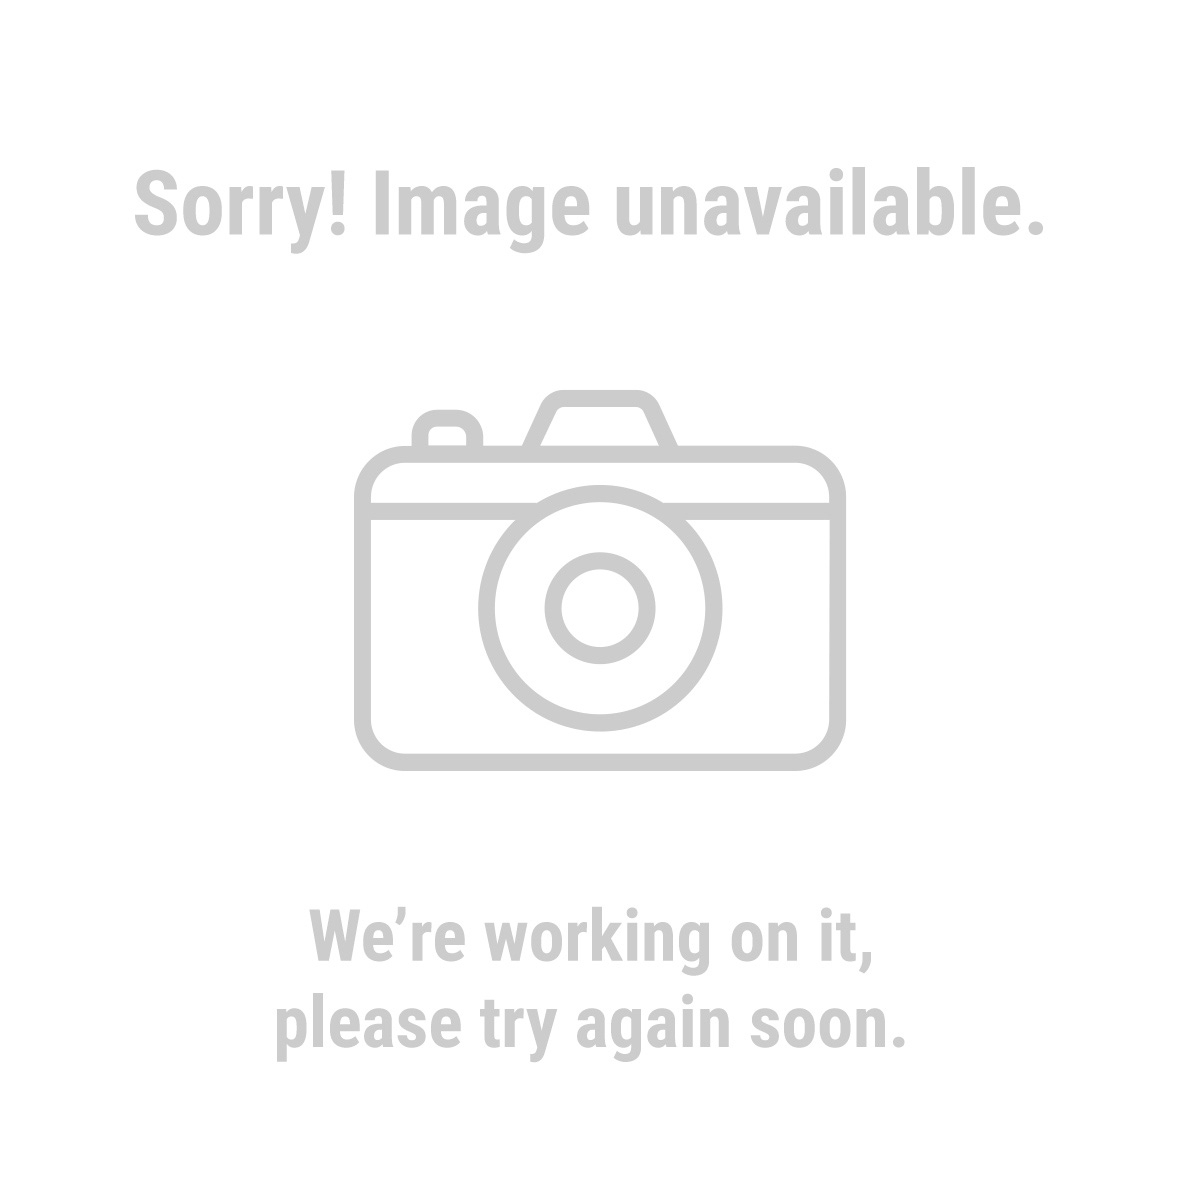 Ceramic Tile Cutter ~ Ceramic tile cutter